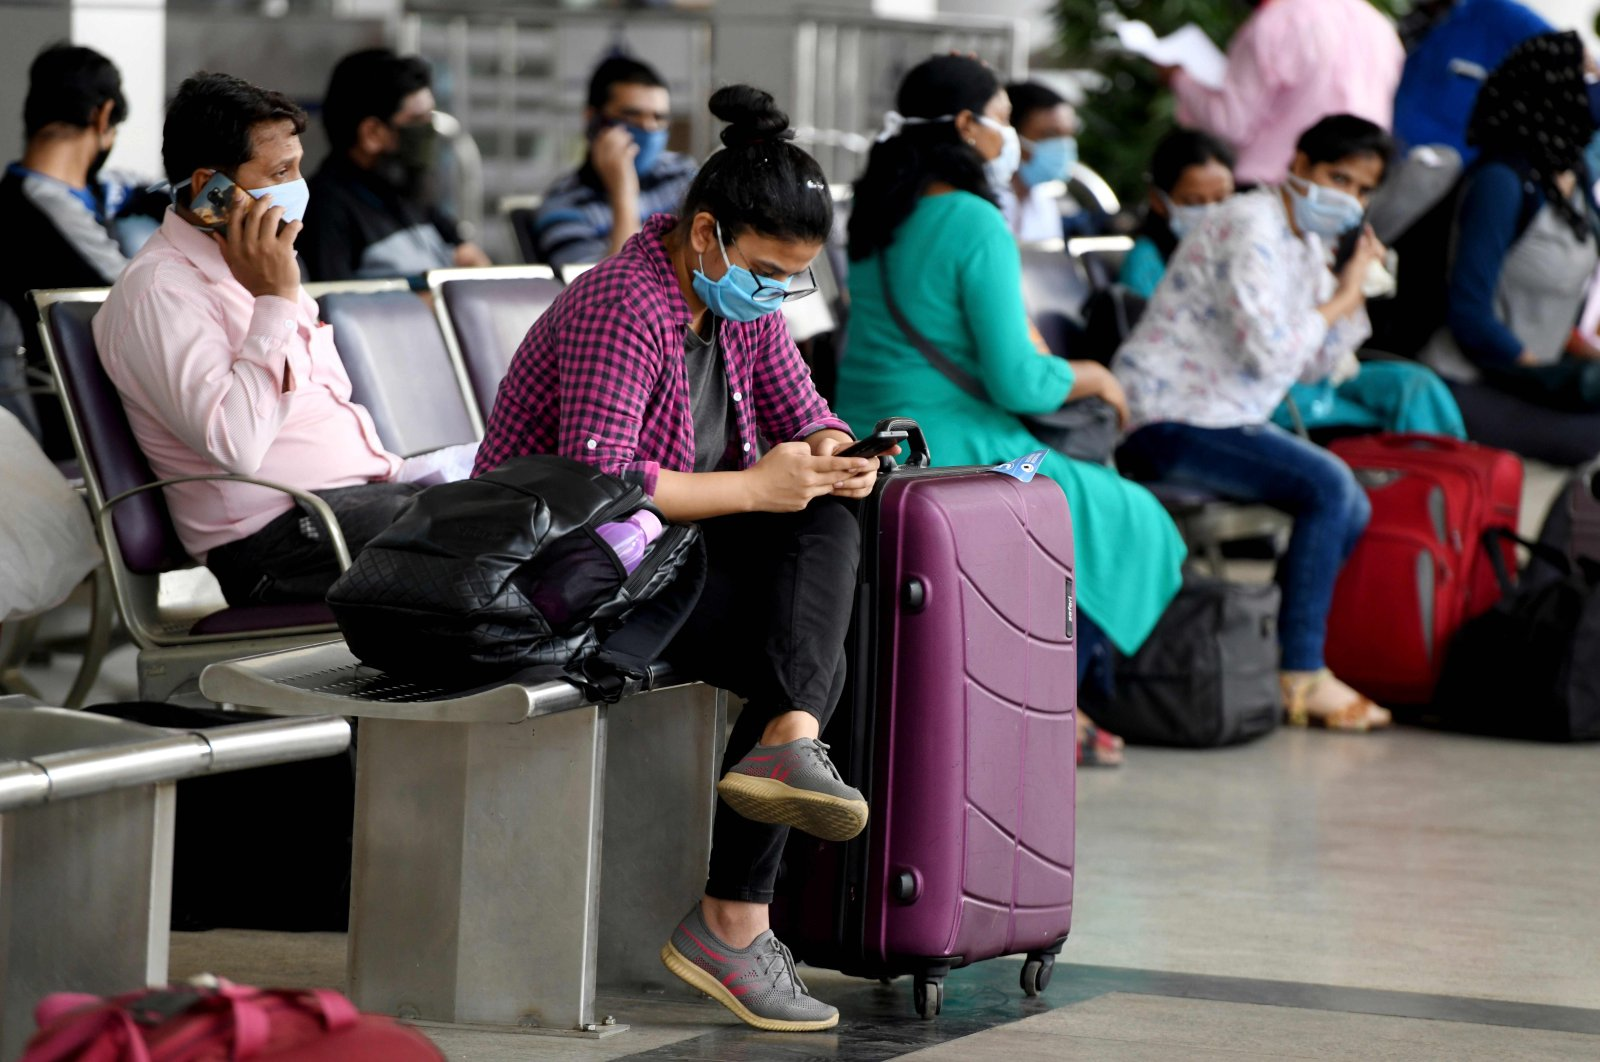 A passenger checks her mobile phone as she waits to check in at Kamaraj Domestic Airport during the first day of the resumption of domestic flights after the government imposed a nationwide lockdown as a preventive measure against the spread of the coronavirus, Chennai, May 25, 2020. (AFP Photo)